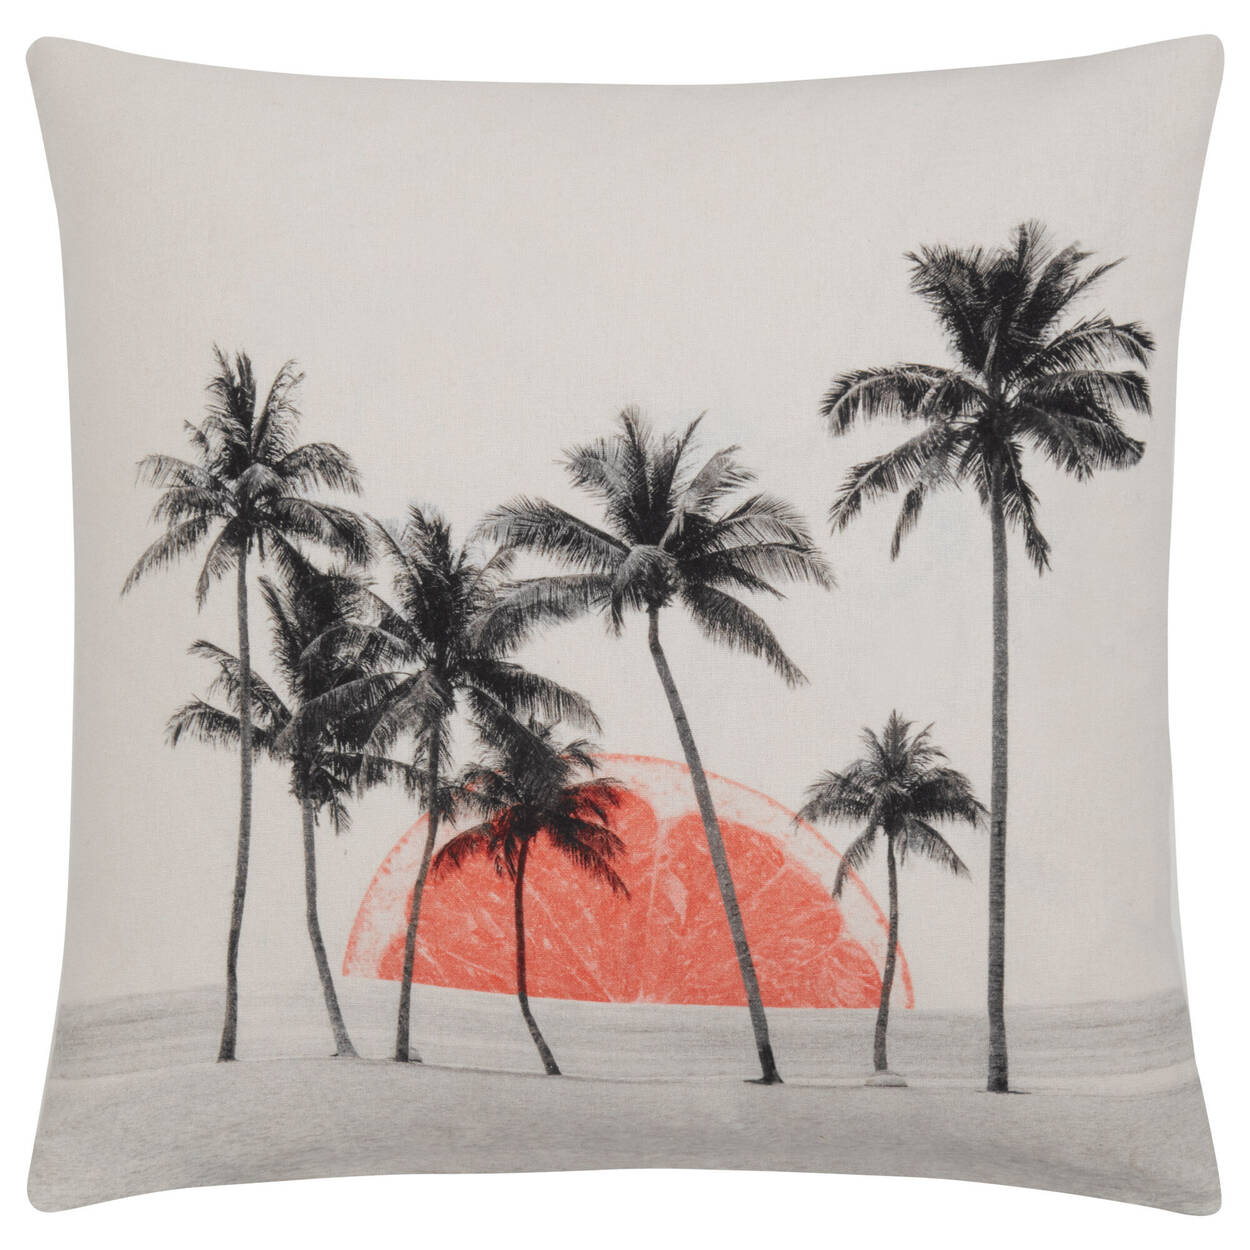 "Sunrise Decorative Pillow Cover 18"" x 18"""